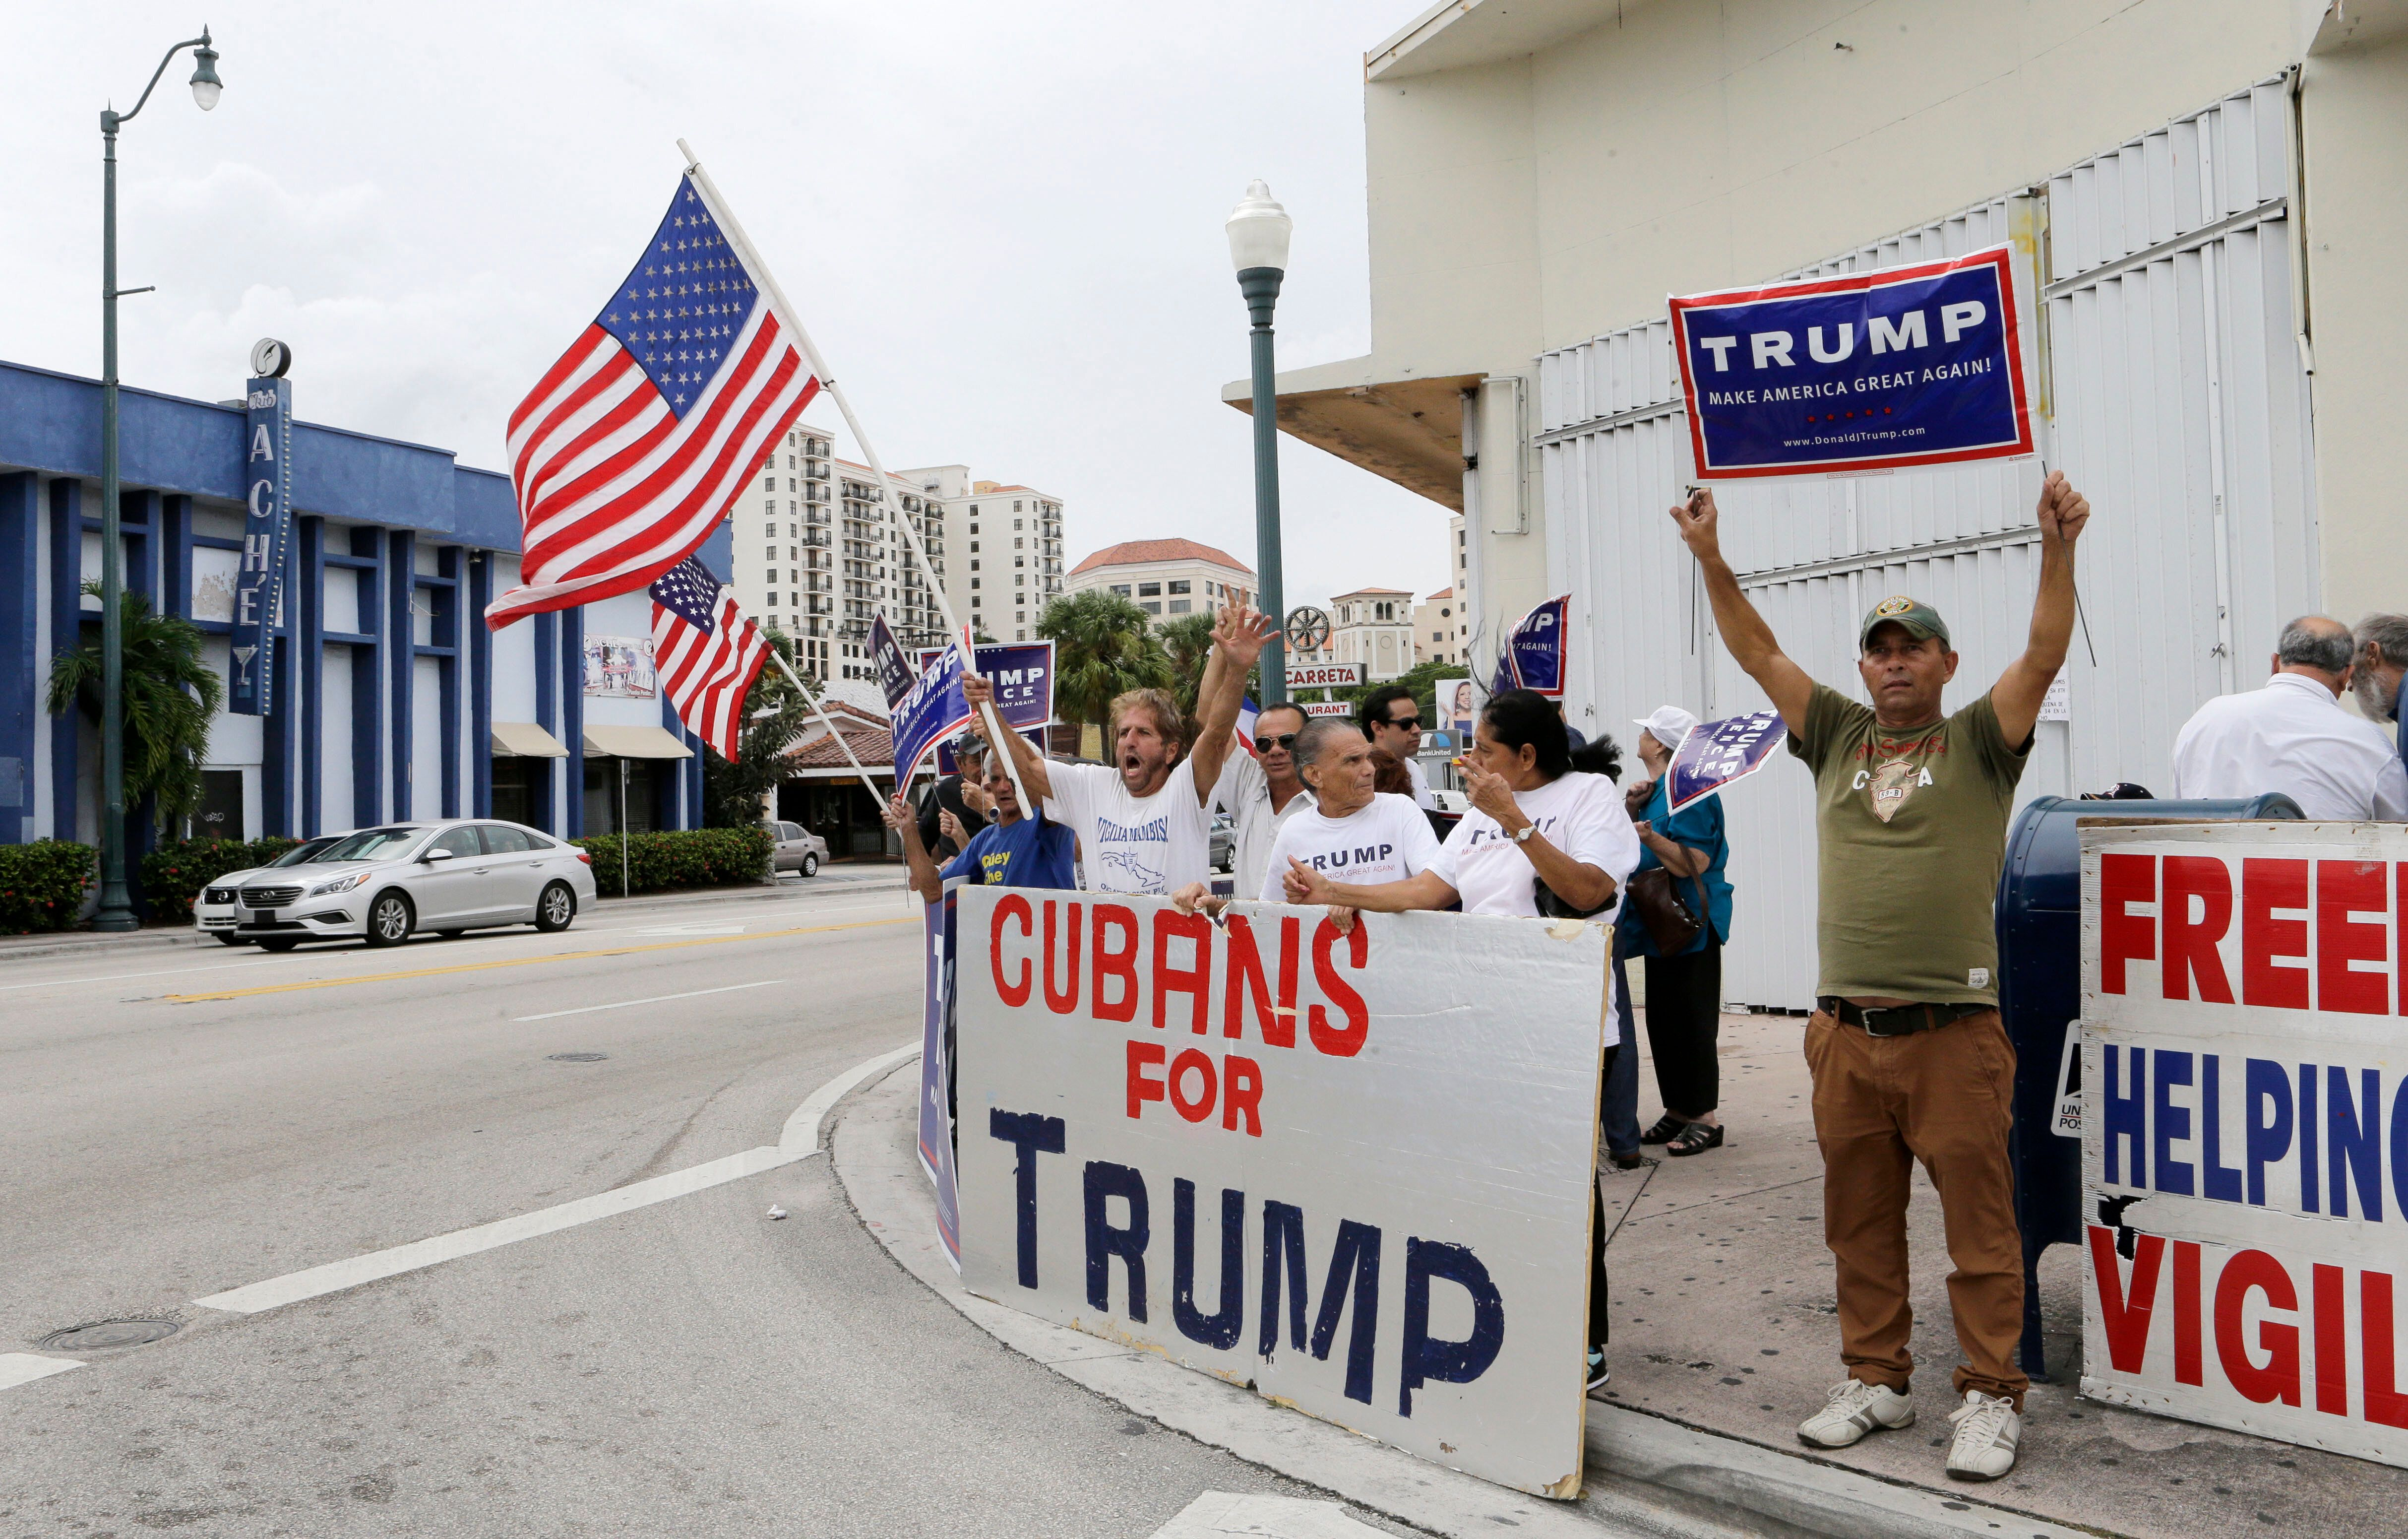 Trump lost Florida Latinos overall in 2016, but won 54% of Cuban American voters.